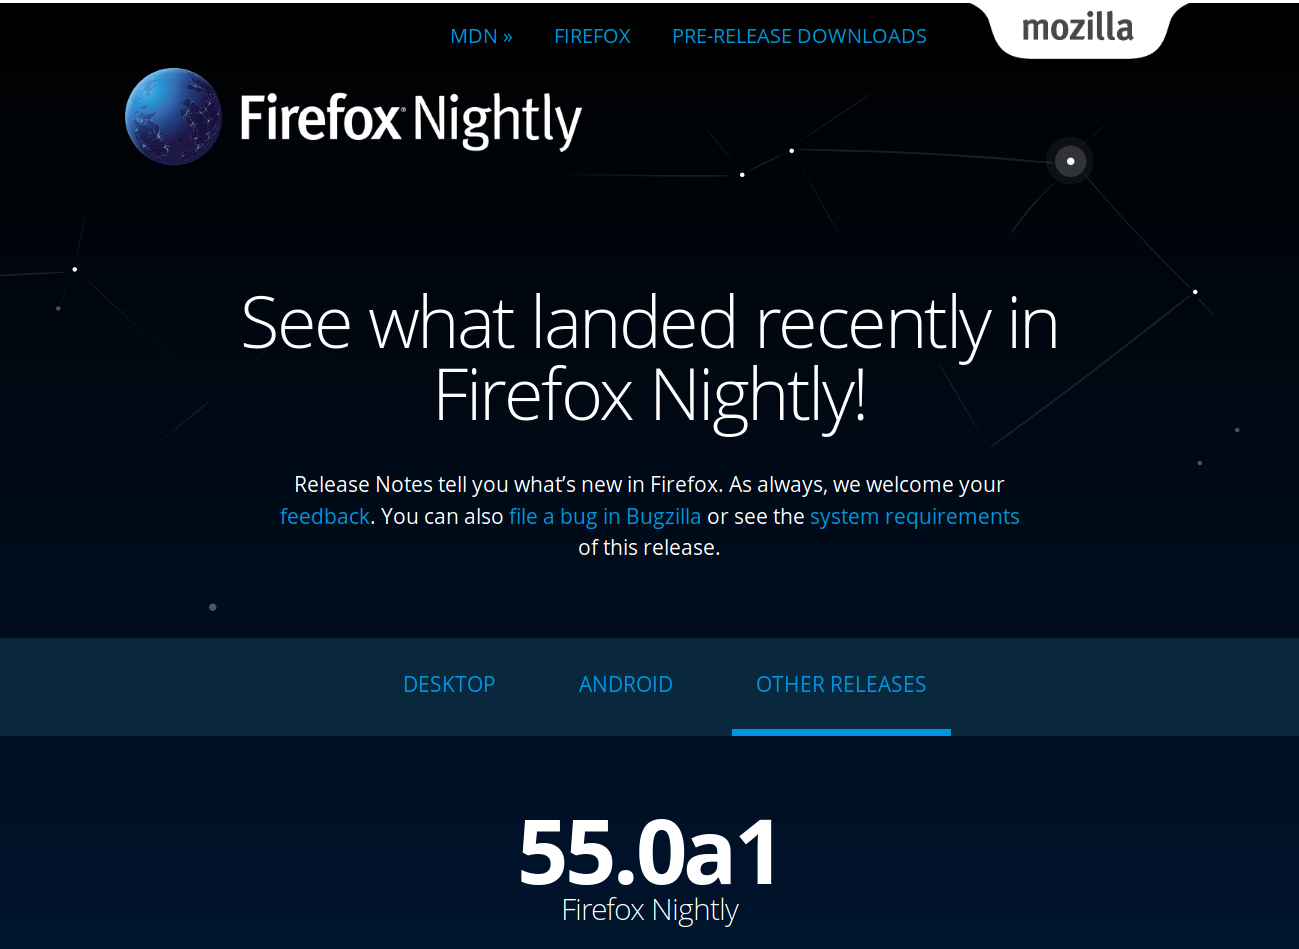 Release Notes for Nightly – Firefox Nightly News